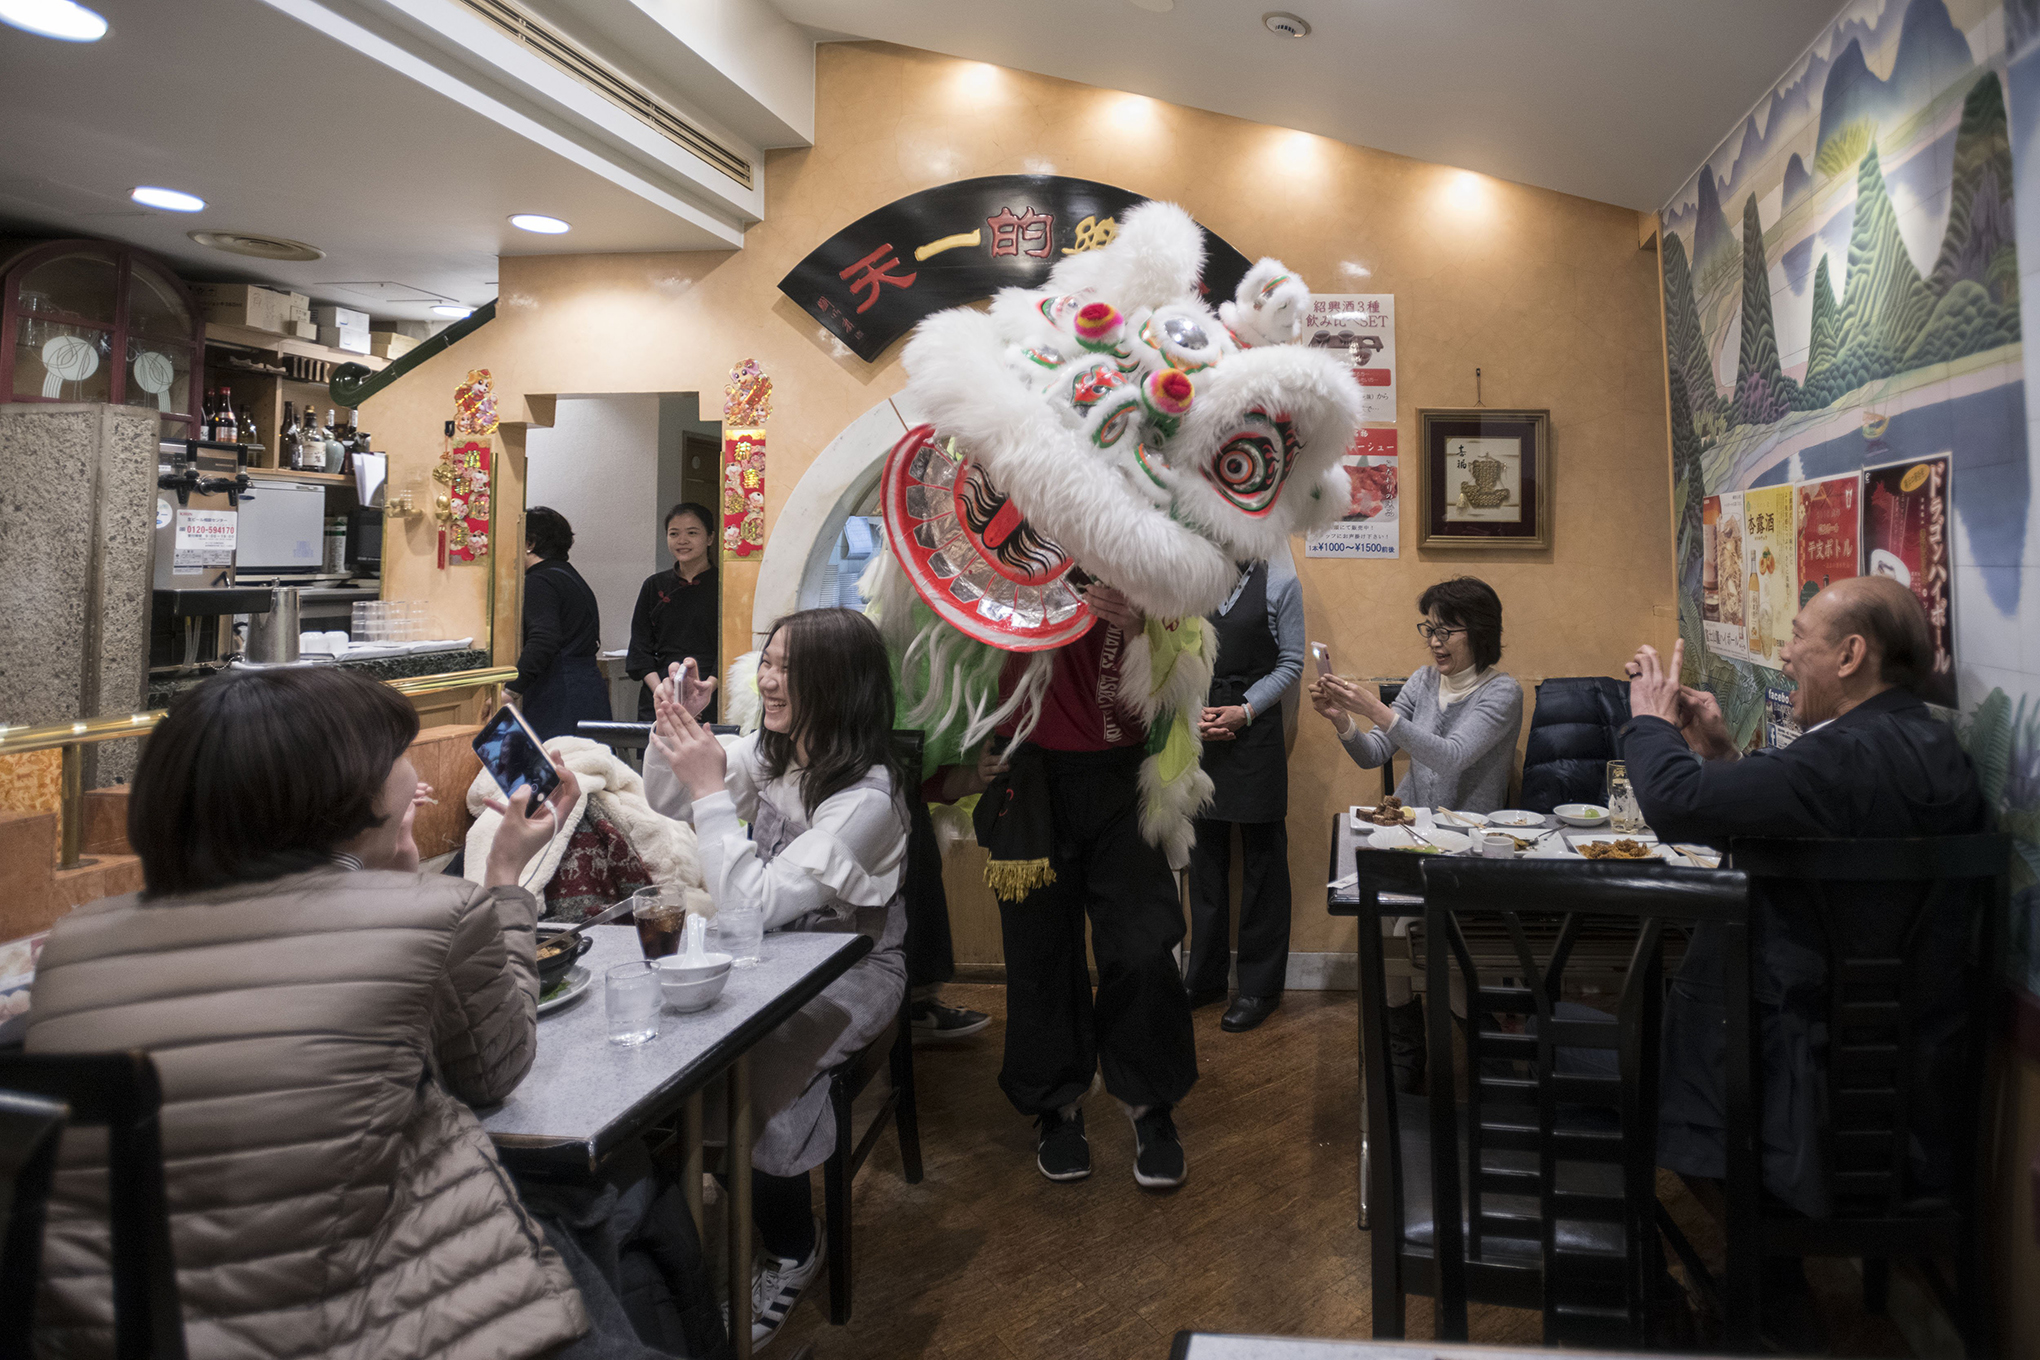 A lion dance is performed inside a restaurant as part of Chinese New Year celebrations in Chinatown, Yokohama, near Tokyo, Feb. 16, 2018.